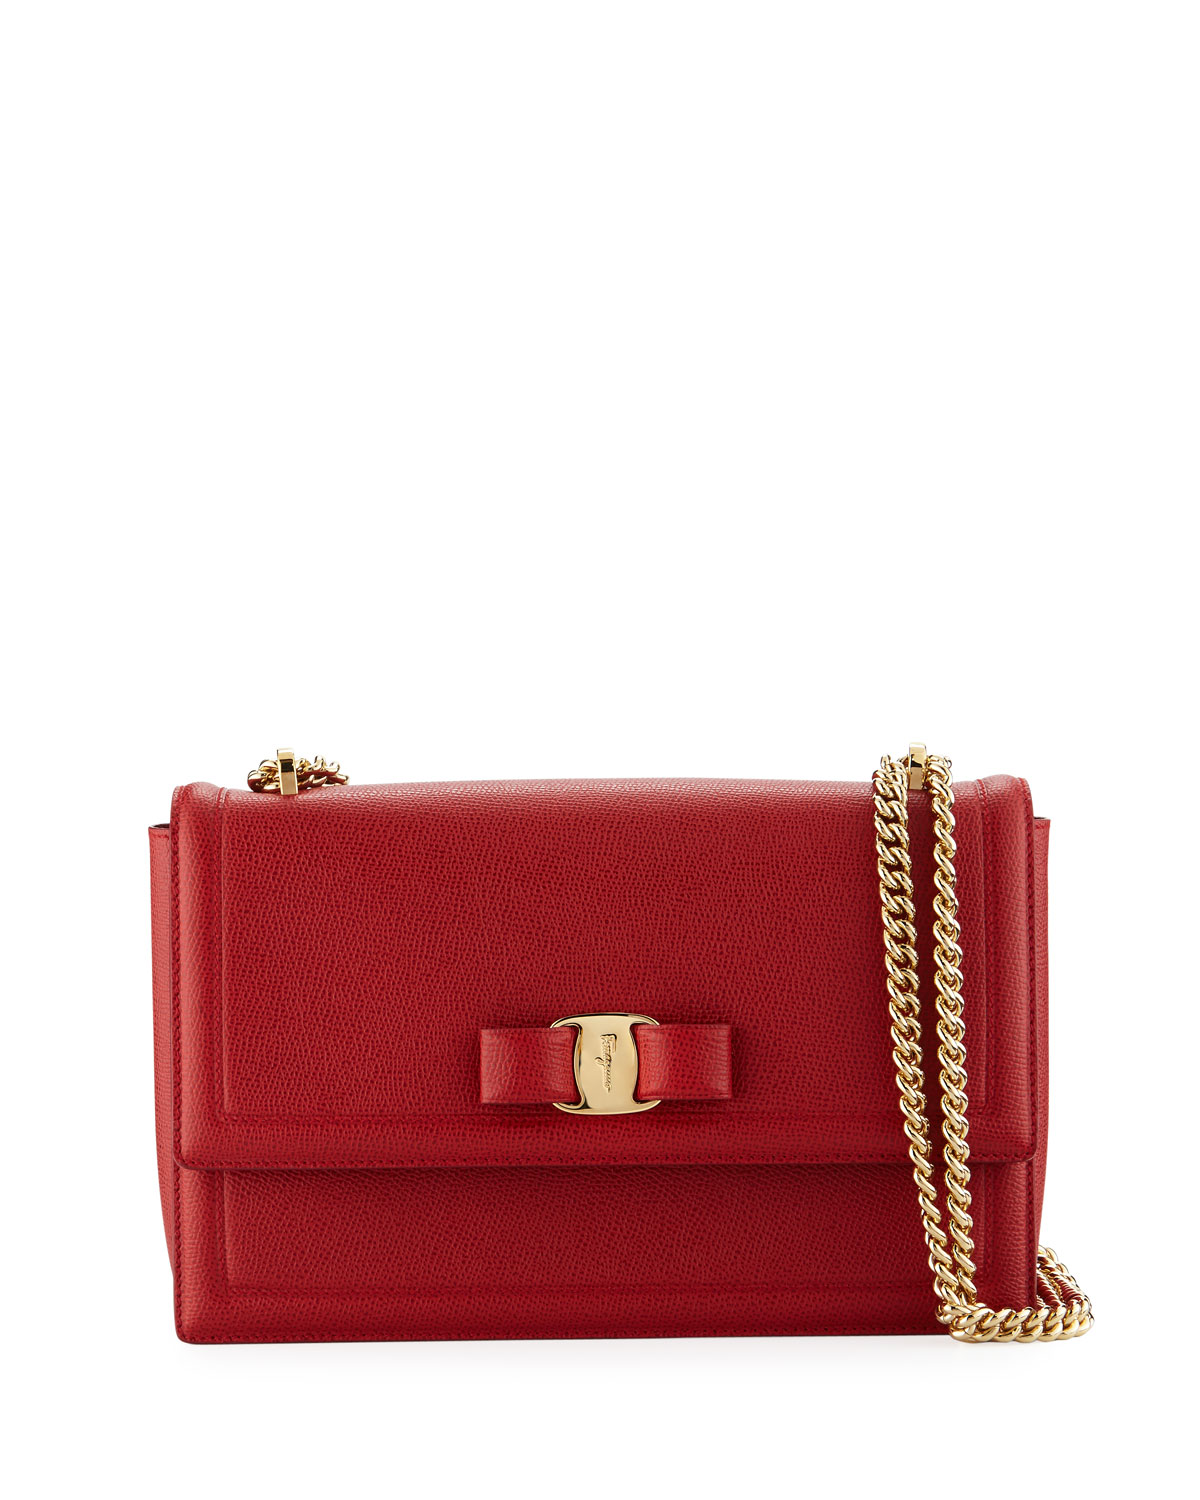 a84102dfae Salvatore Ferragamo Medium Ginny Shoulder Bag